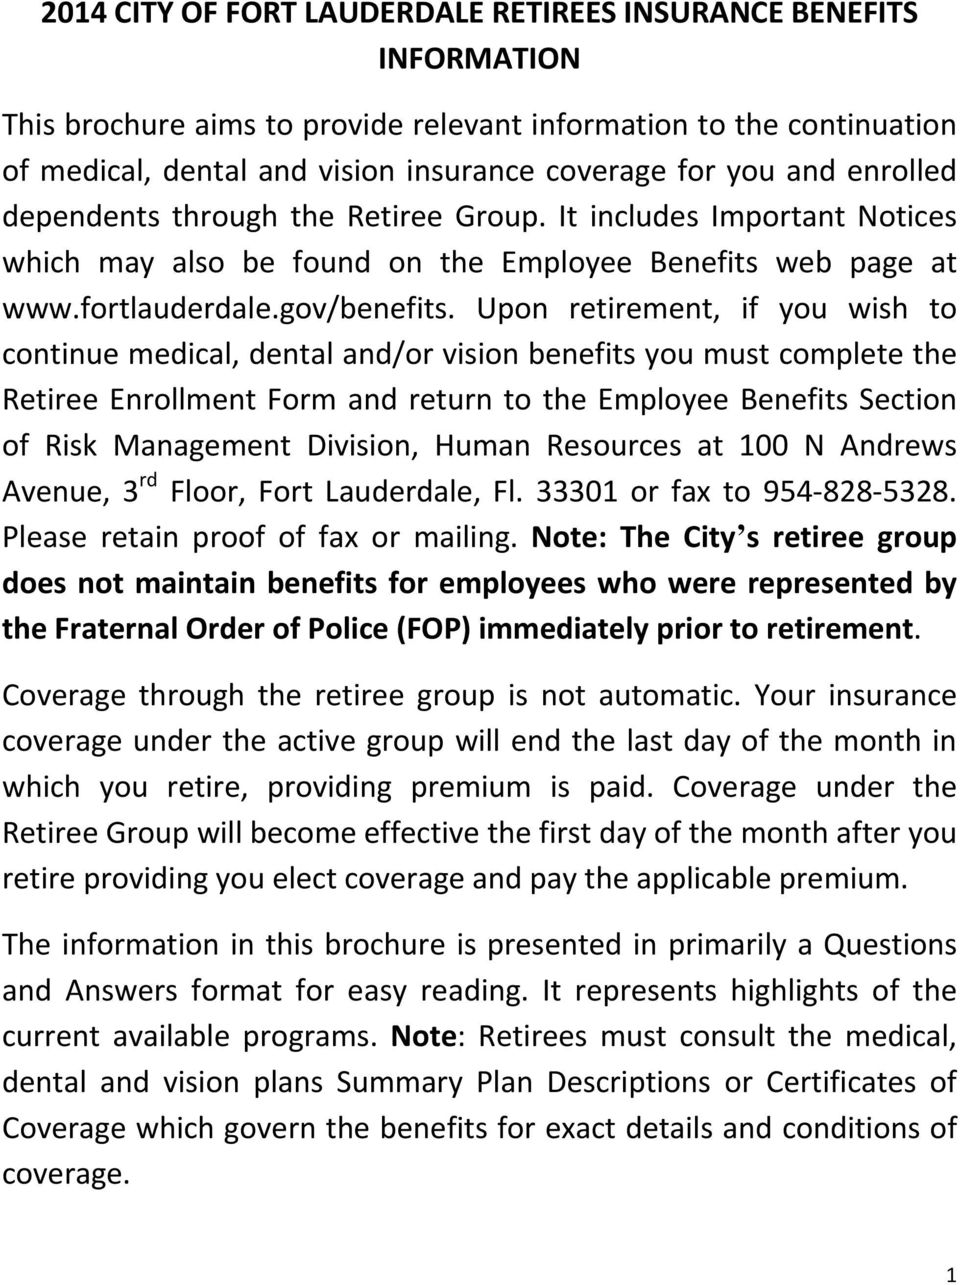 Upon retirement, if you wish to continue medical, dental and/or vision benefits you must complete the Retiree Enrollment Form and return to the Employee Benefits Section of Risk Management Division,